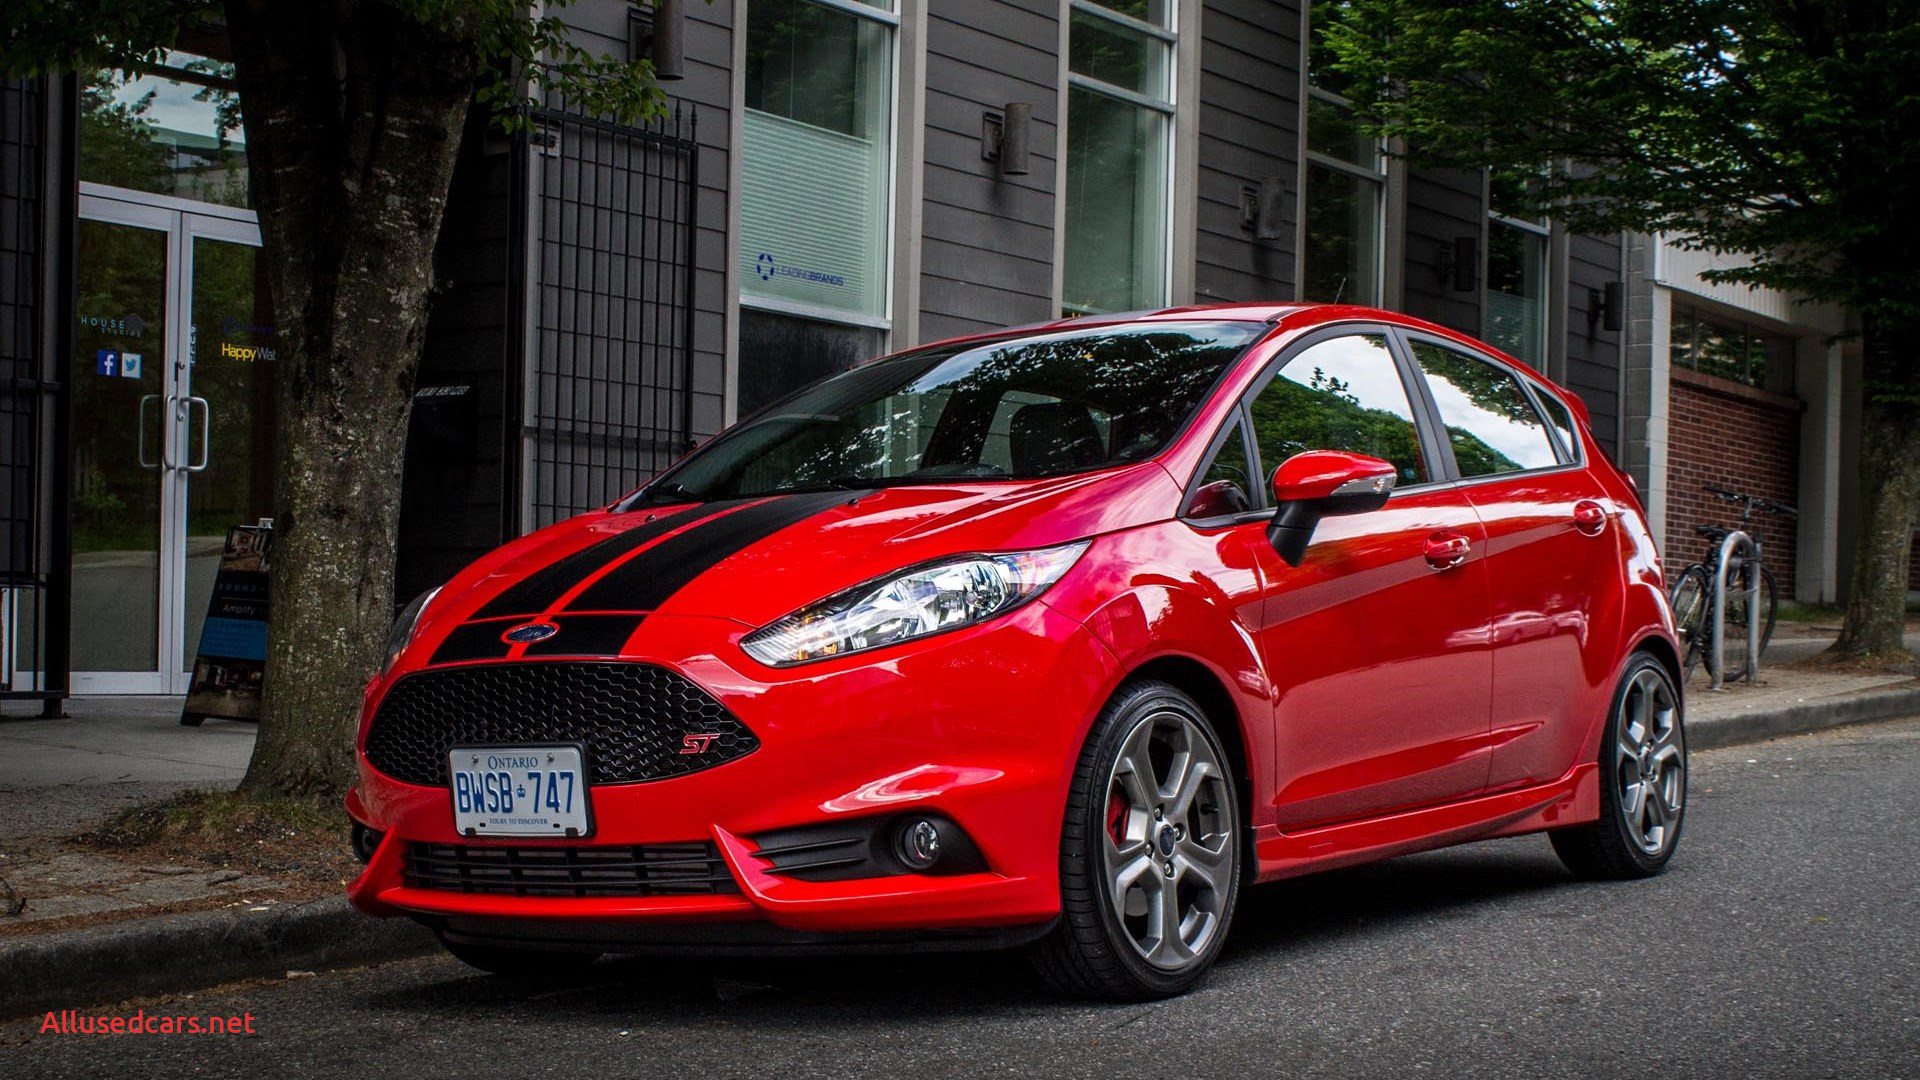 Fiesta St for Sale Elegant the Quick and the Dad 2015 ford Fiesta St Review